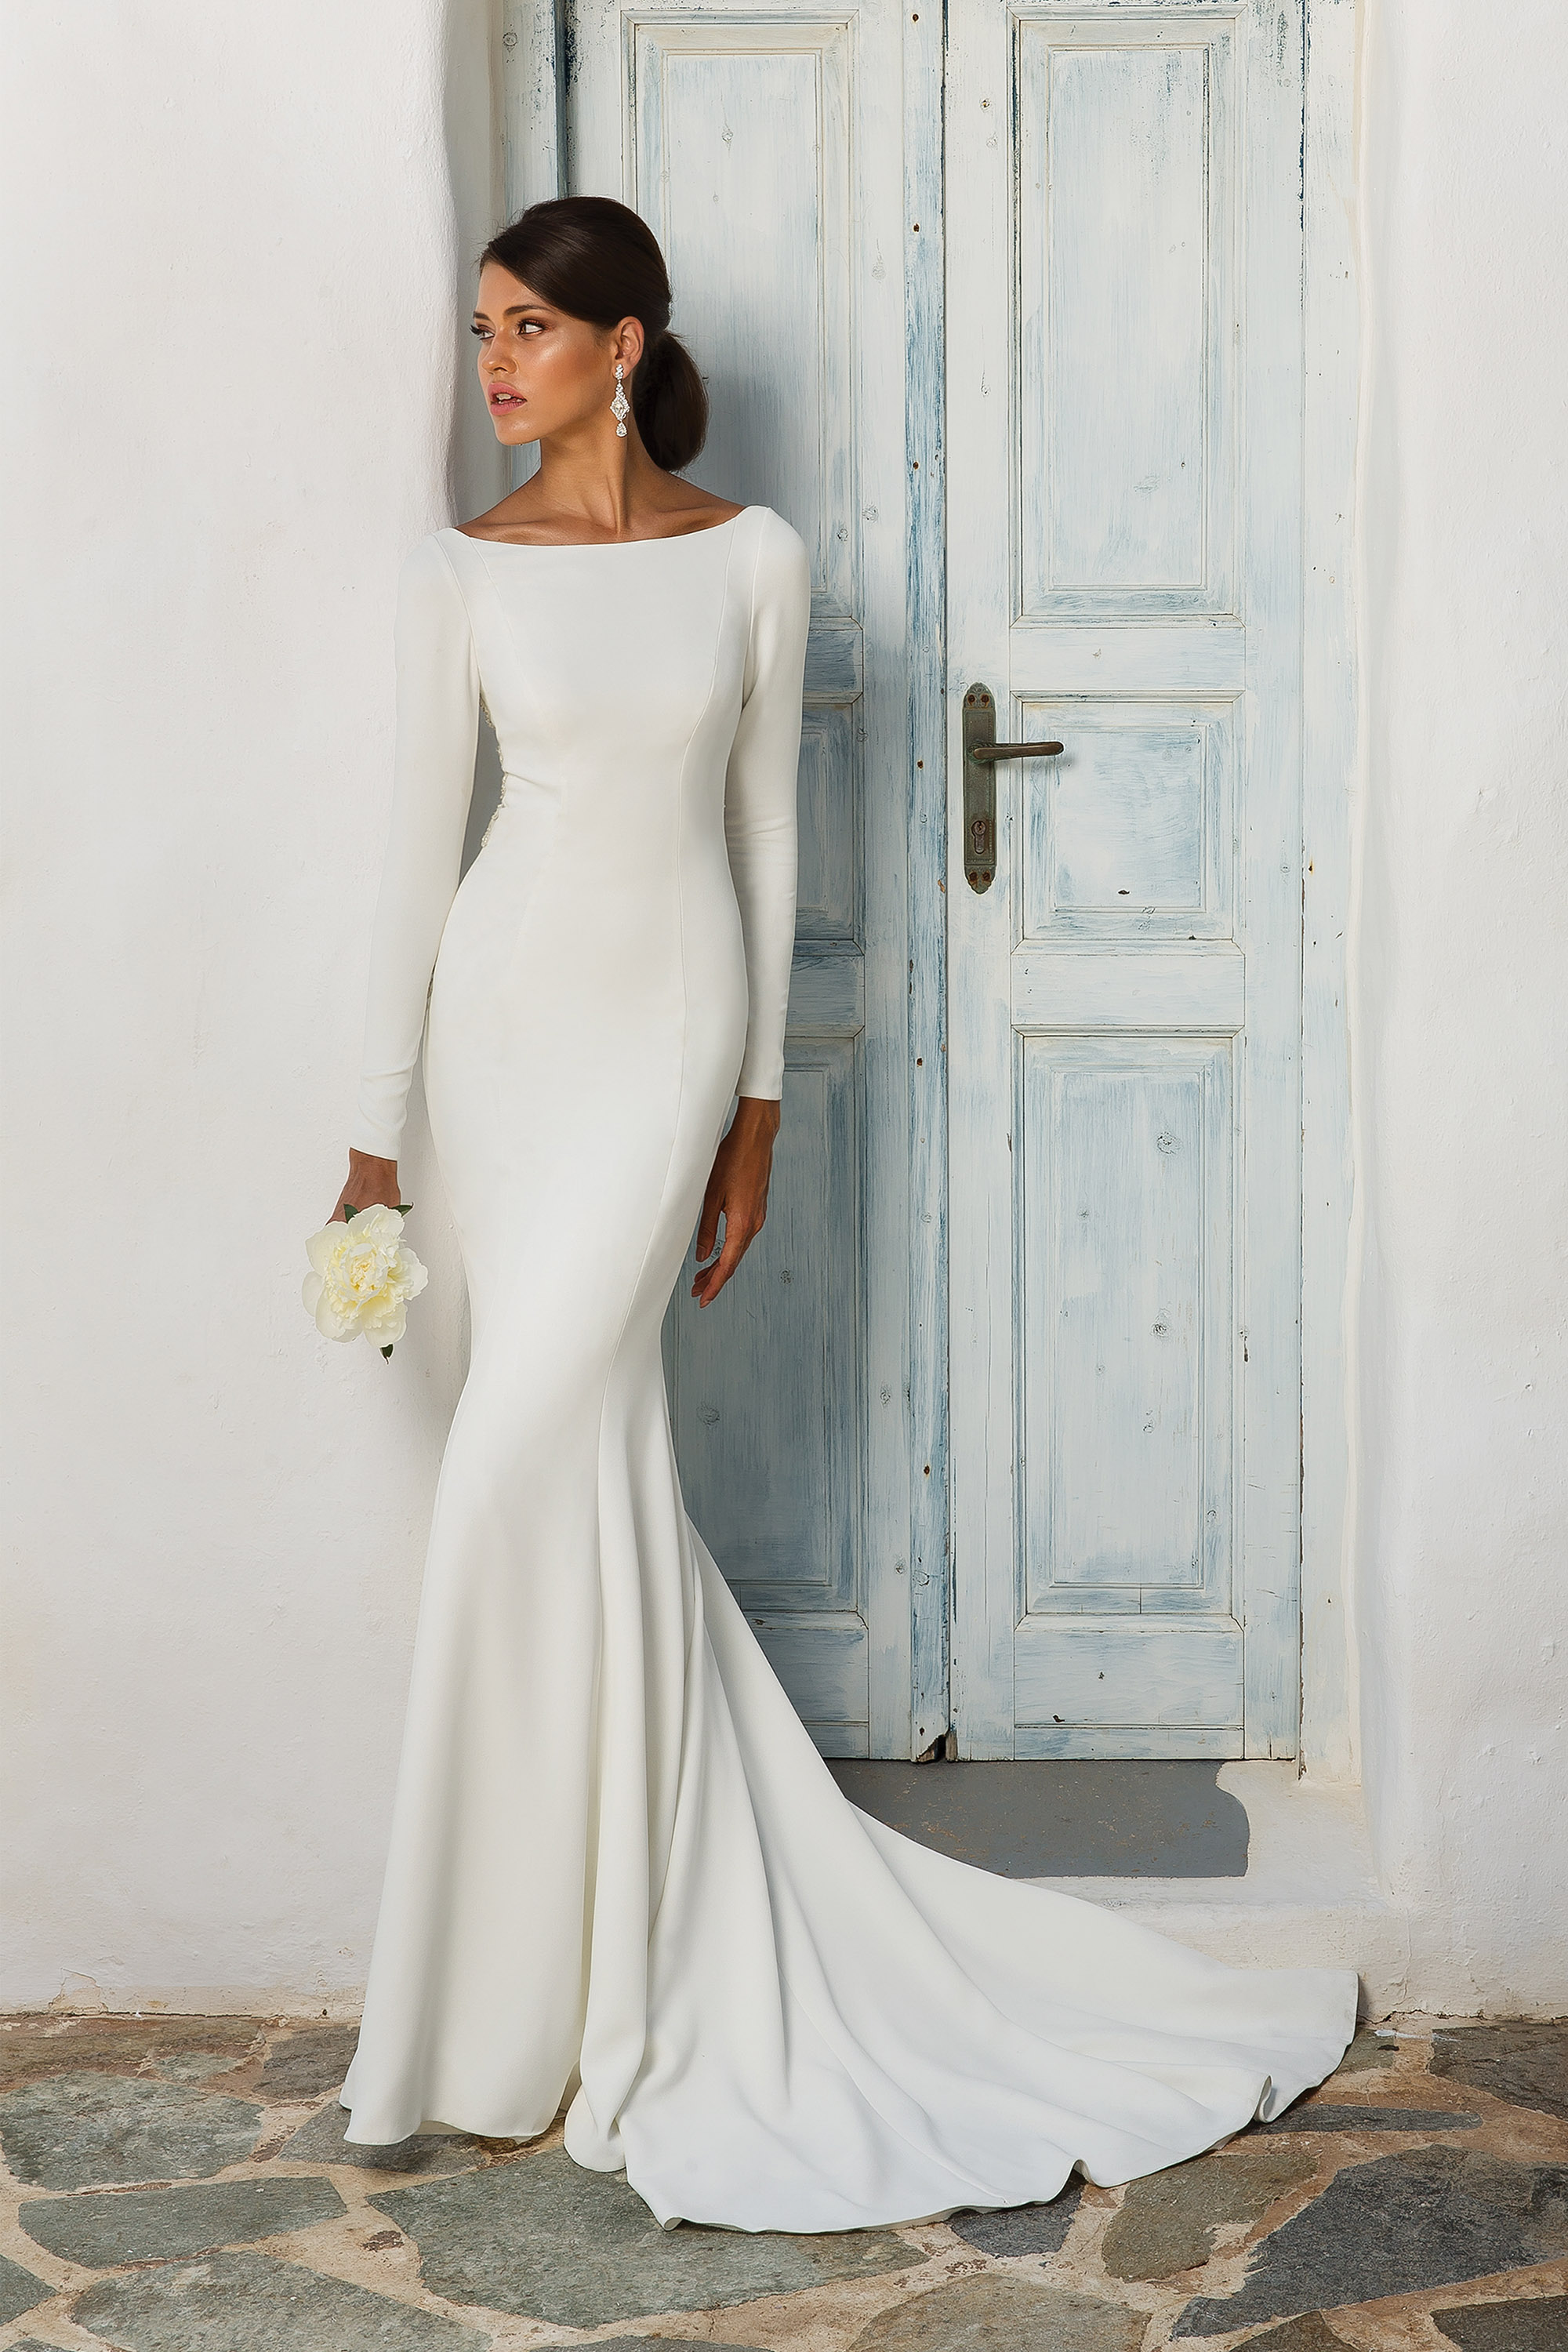 Bateau White Satin Mermaid Wedding Dress With Long Sleeves And